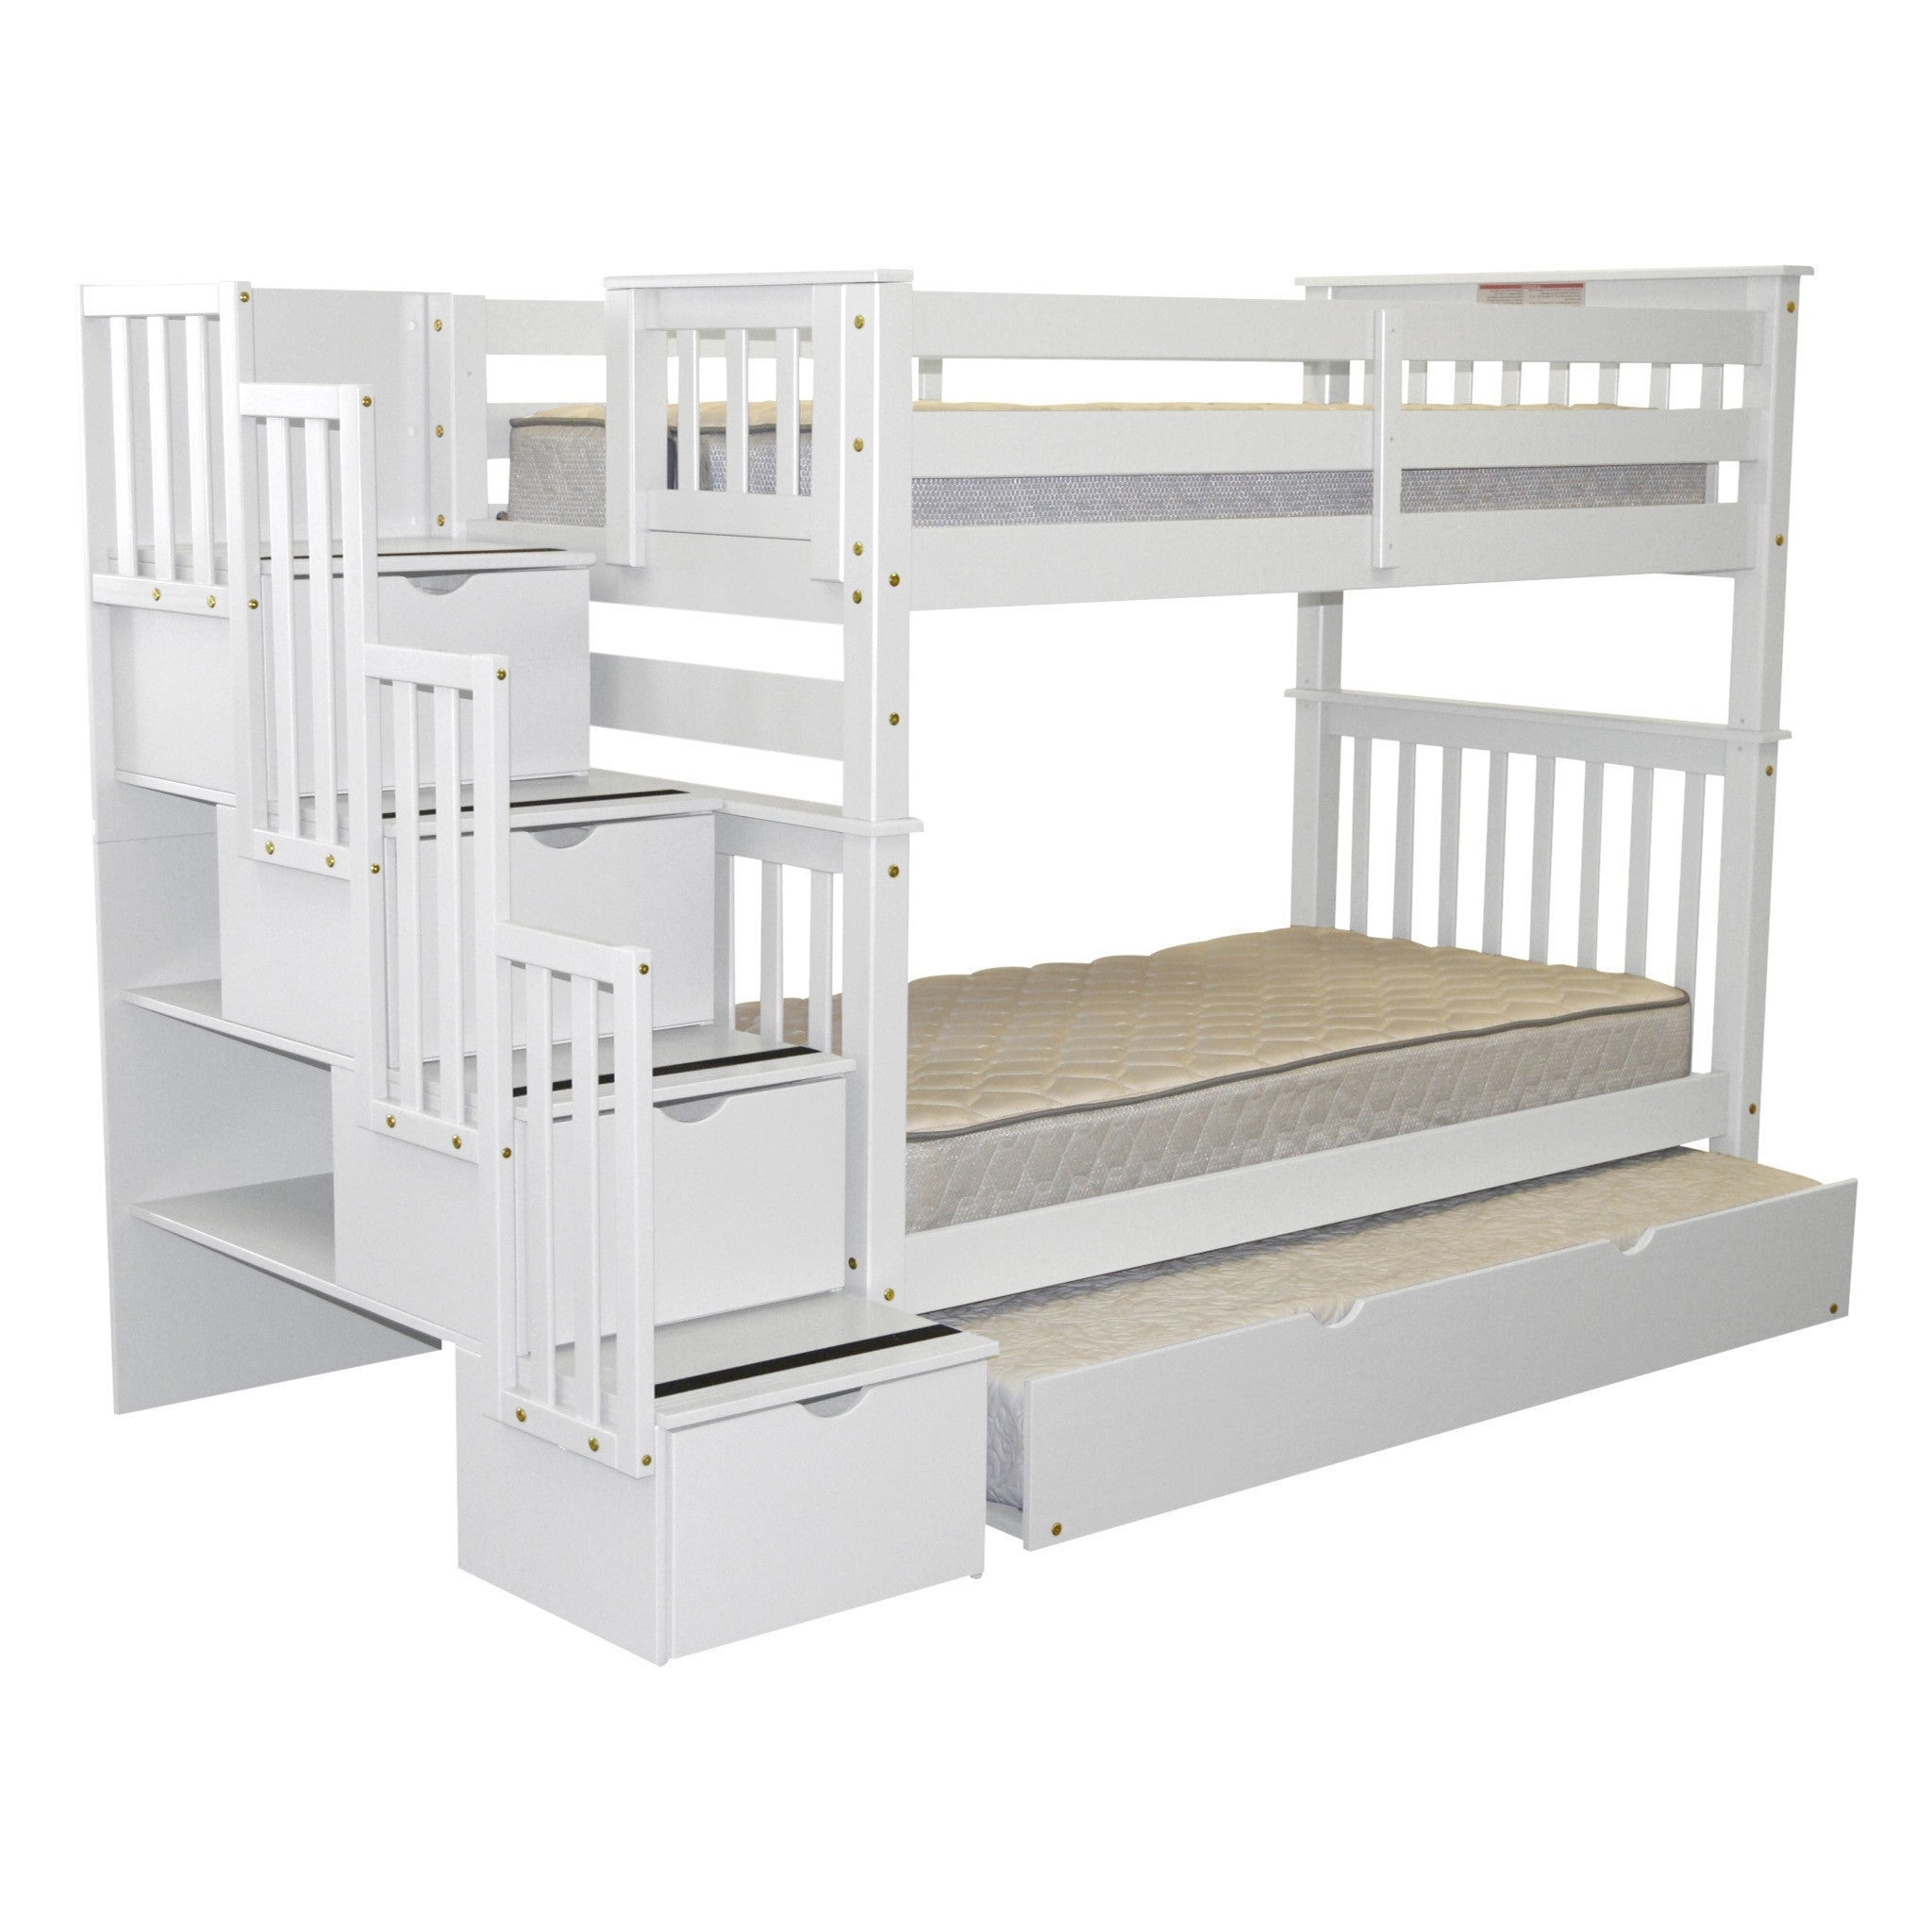 Picture of: Bedz King Bunk Beds Twin Over Twin Stairway 4 Step Drawers Twin Trundle White On Sale Overstock 14229146